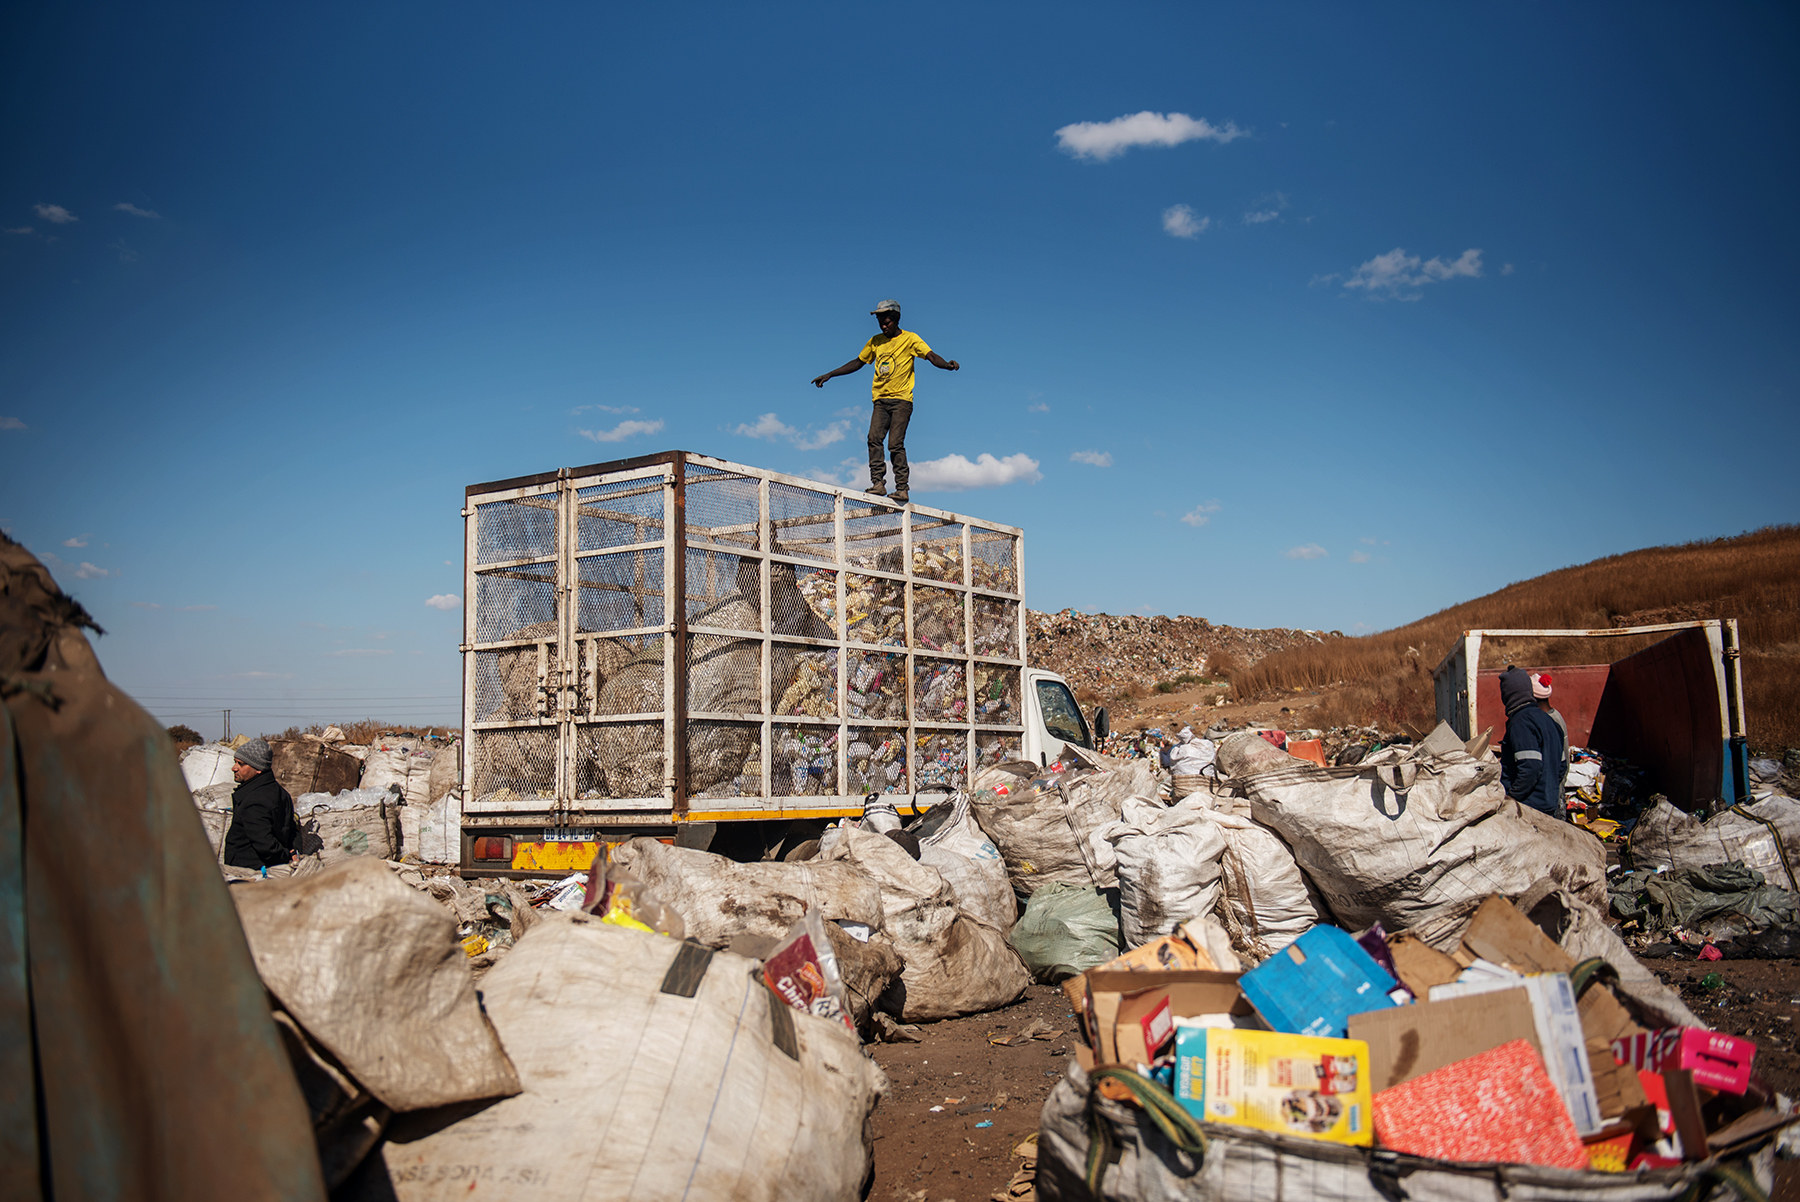 An informal waste picker walks on top of a garbage truck at the Palm Springs landfill in the outskirt of Johannesburg, South Africa, on June 28, 2019.